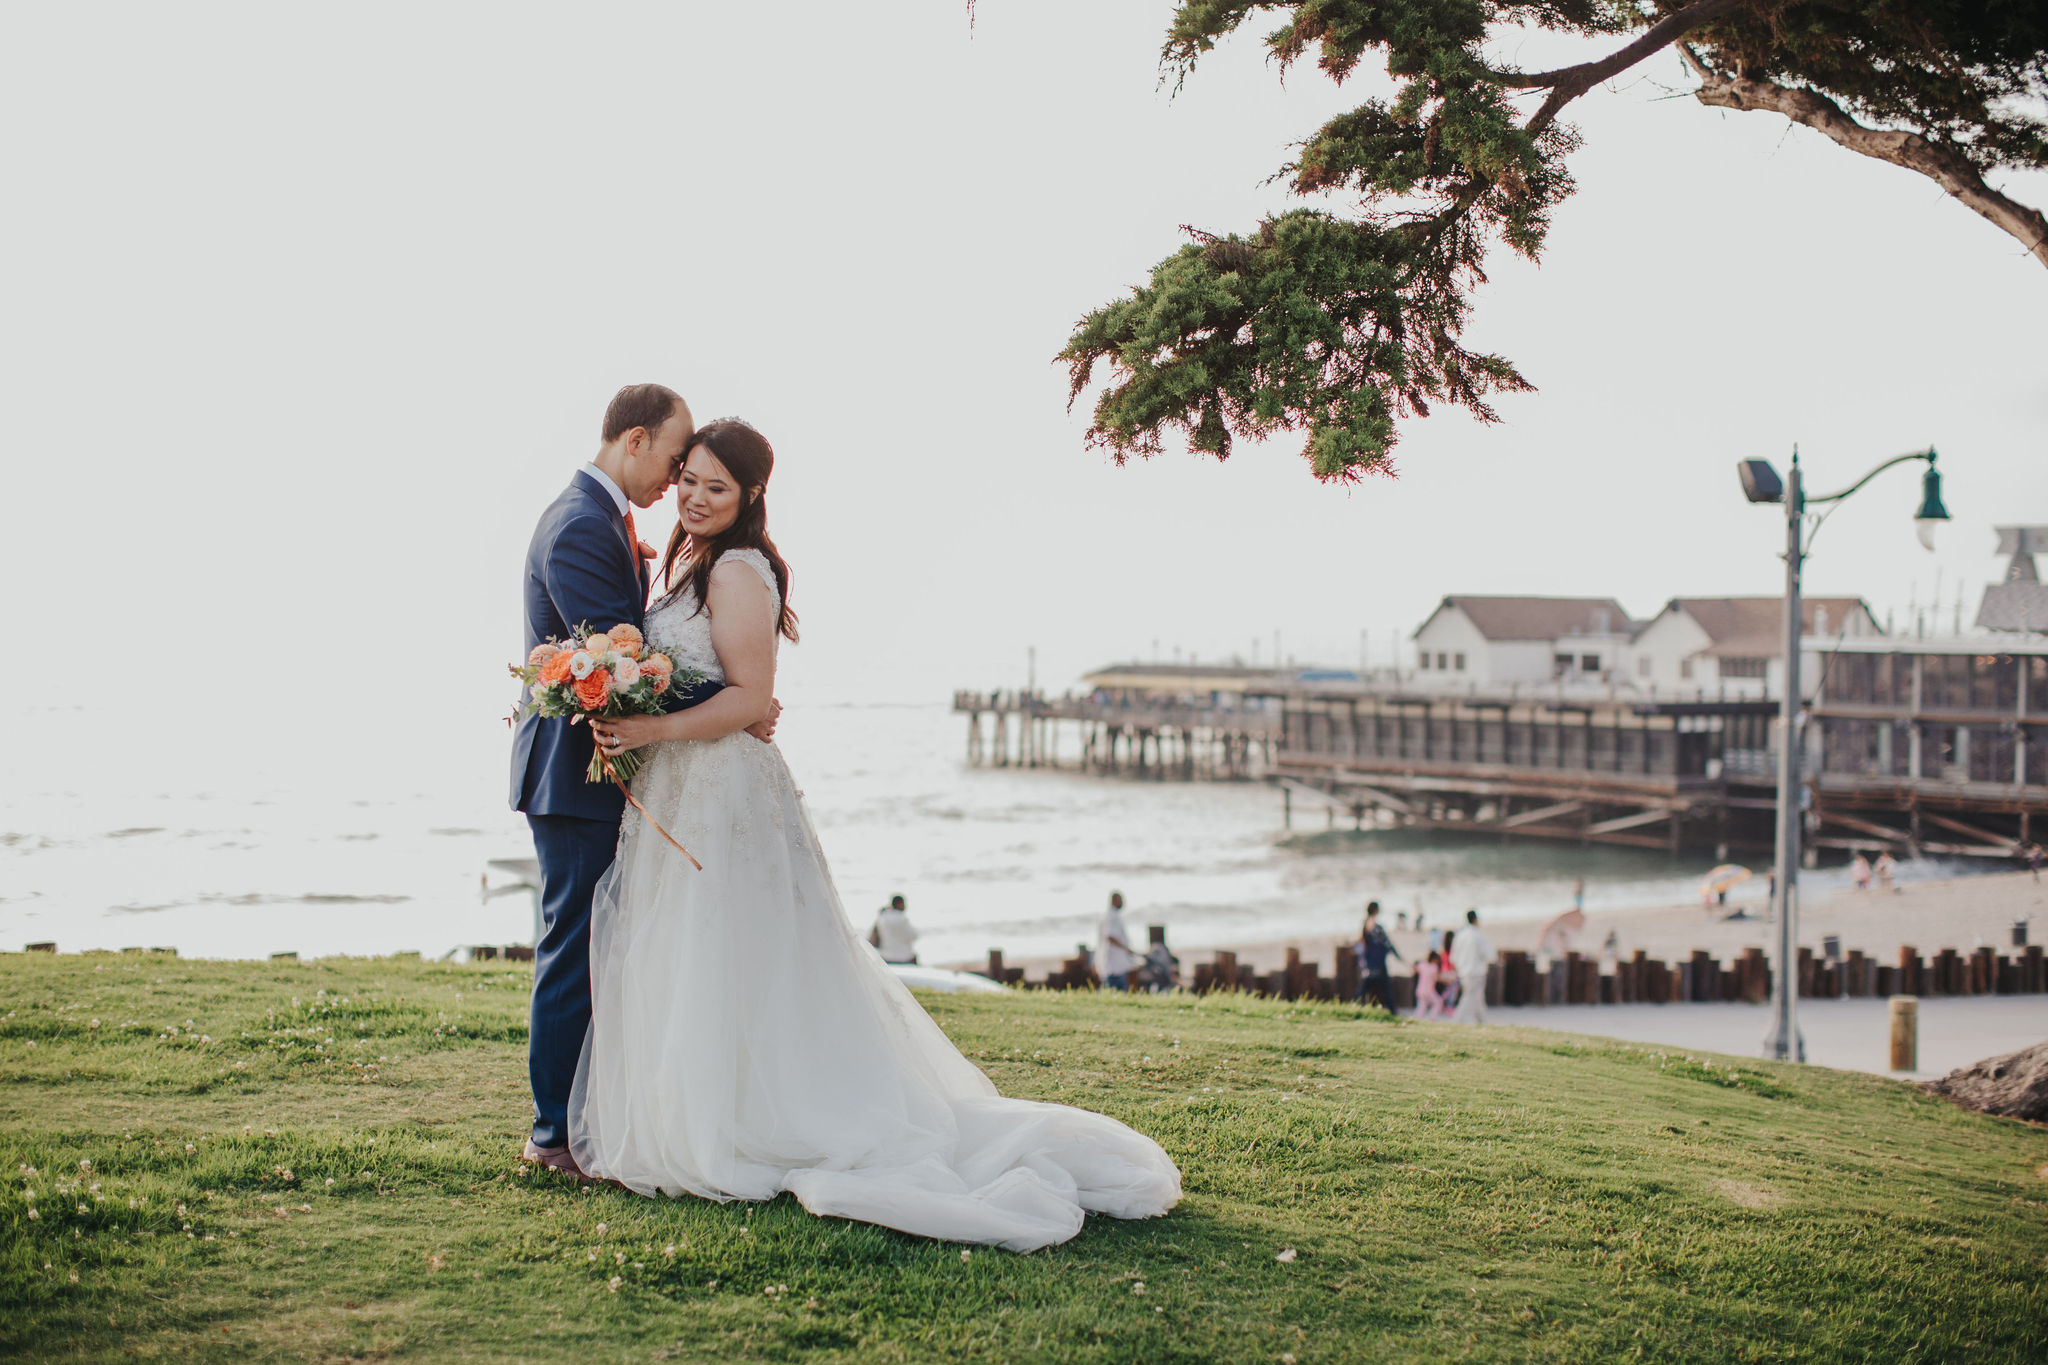 Park Wedding | Redondo Beach